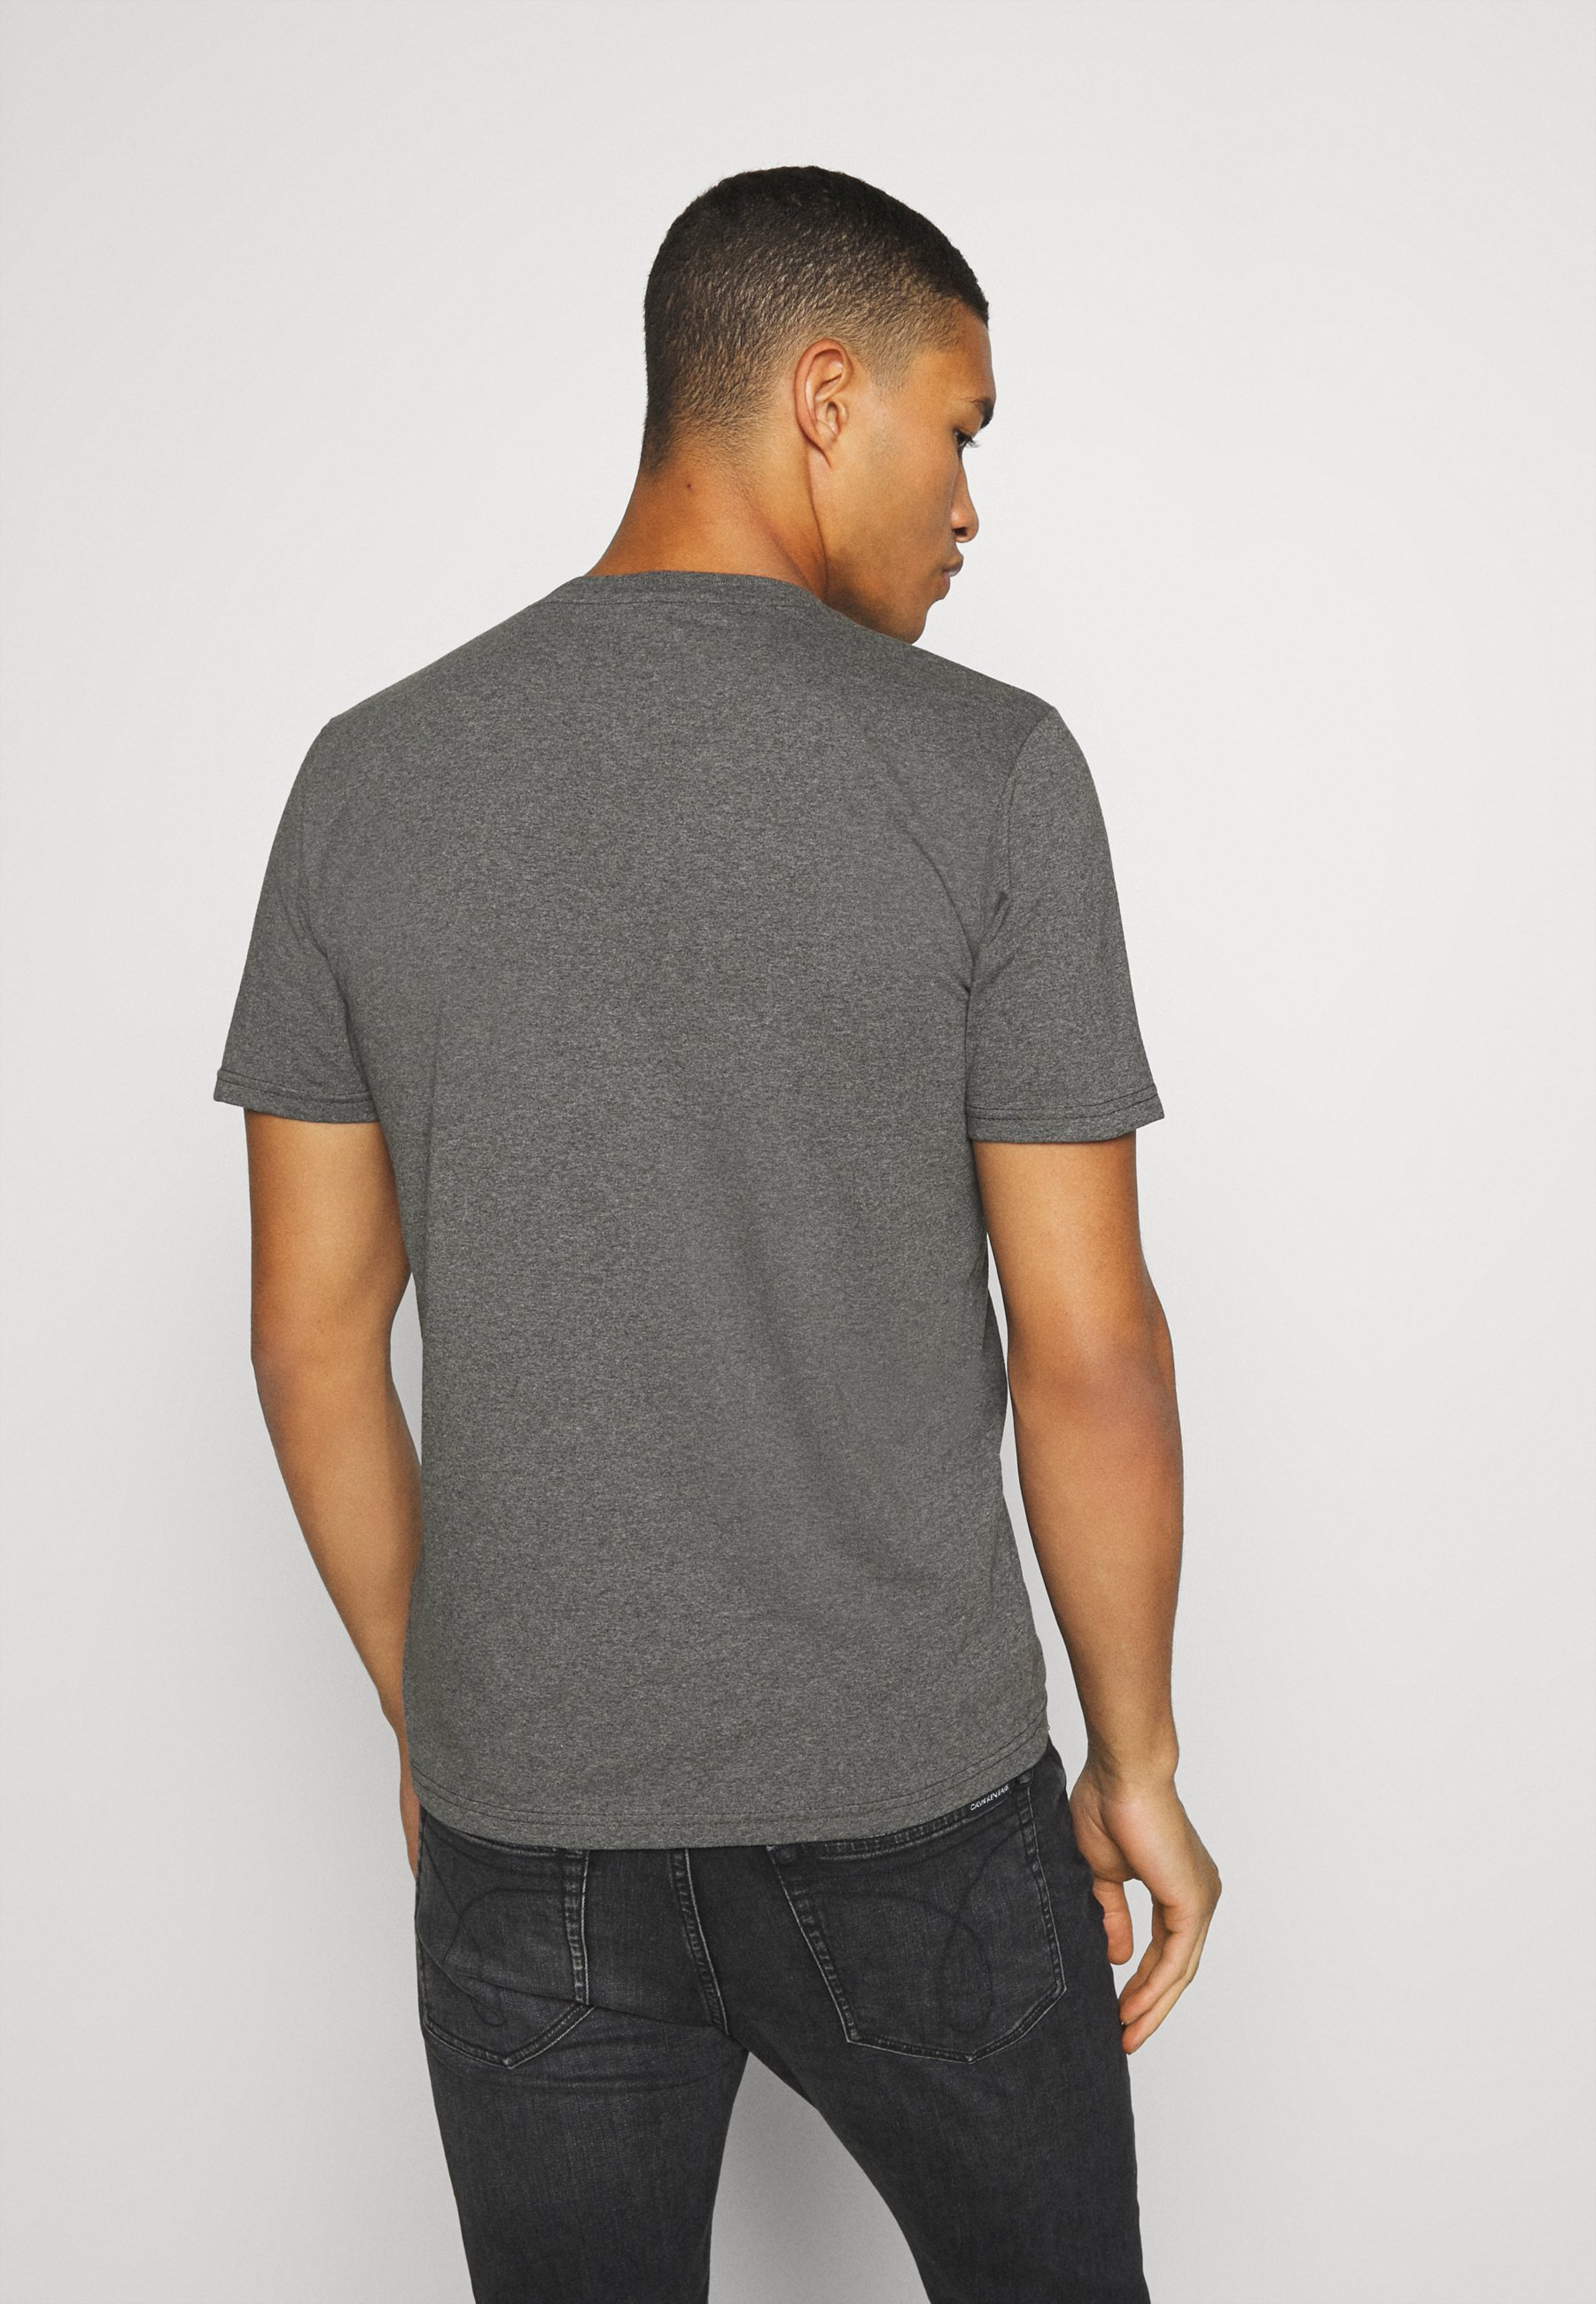 Lee TONAL FLOCK LOGO TEE - Print T-shirt - dark grey 1p9ls